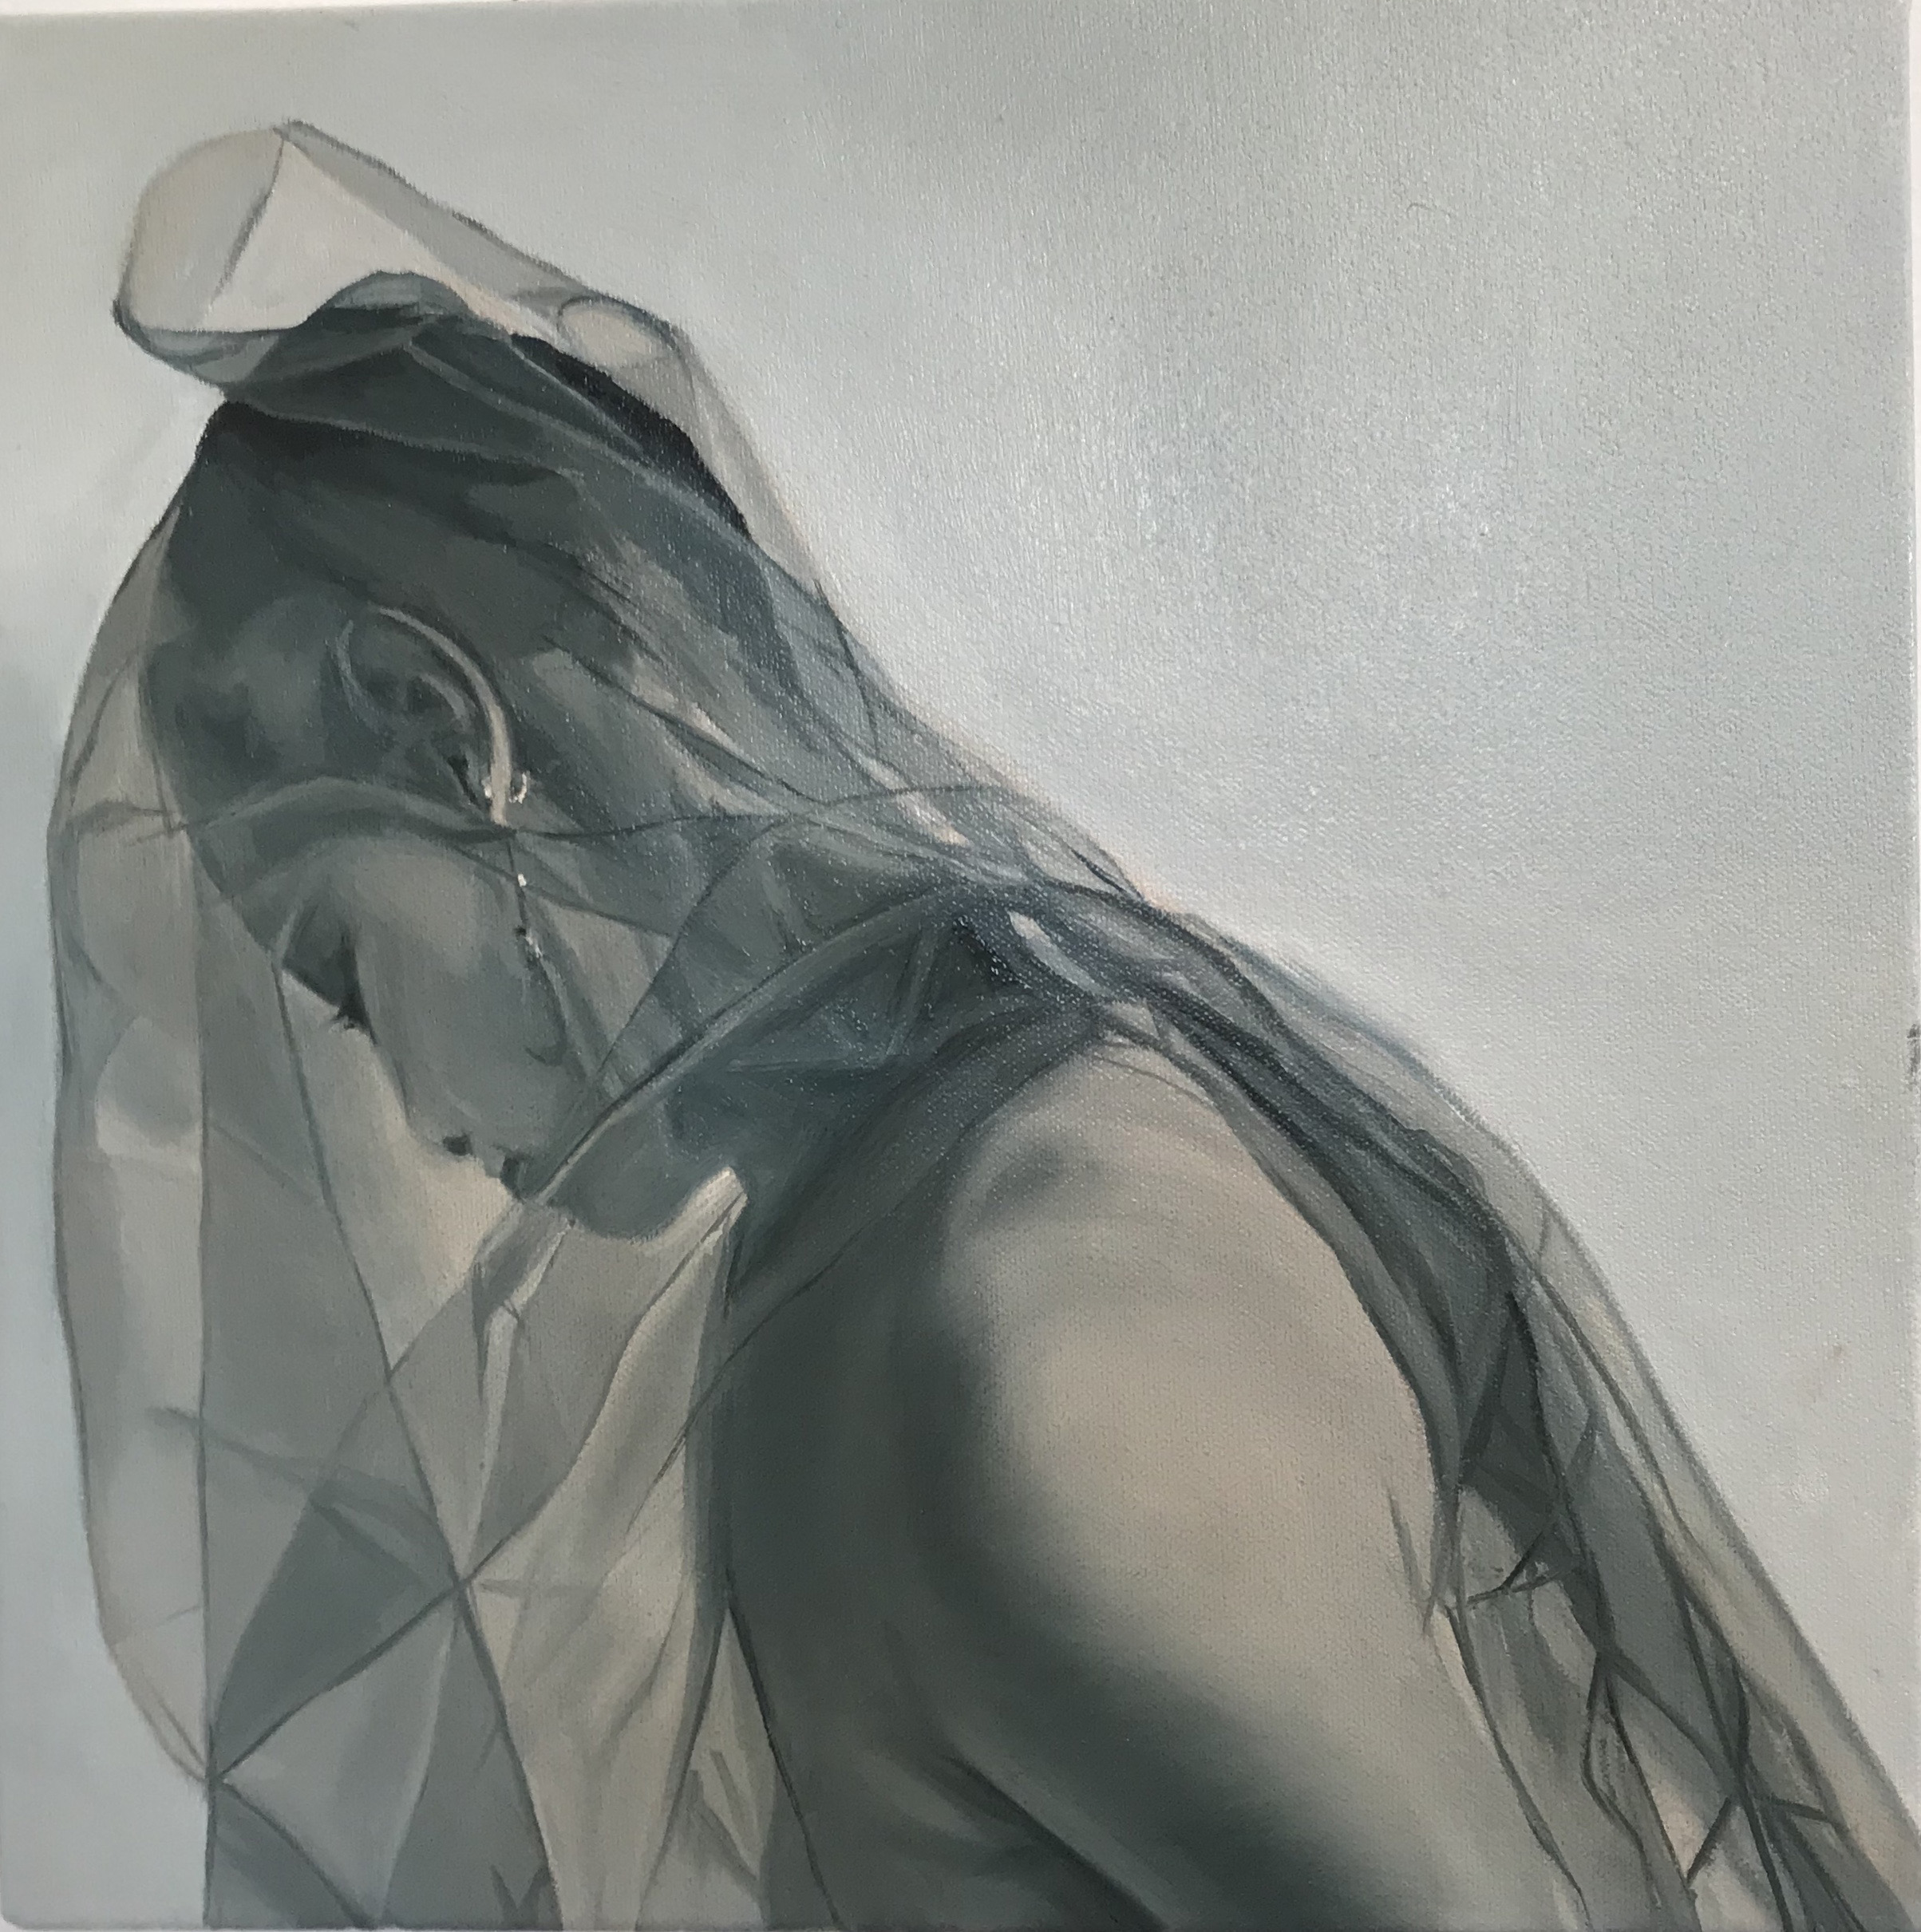 """Letetia Performing in Veil"" by Nan Ring, oil on canvas, 12x12"